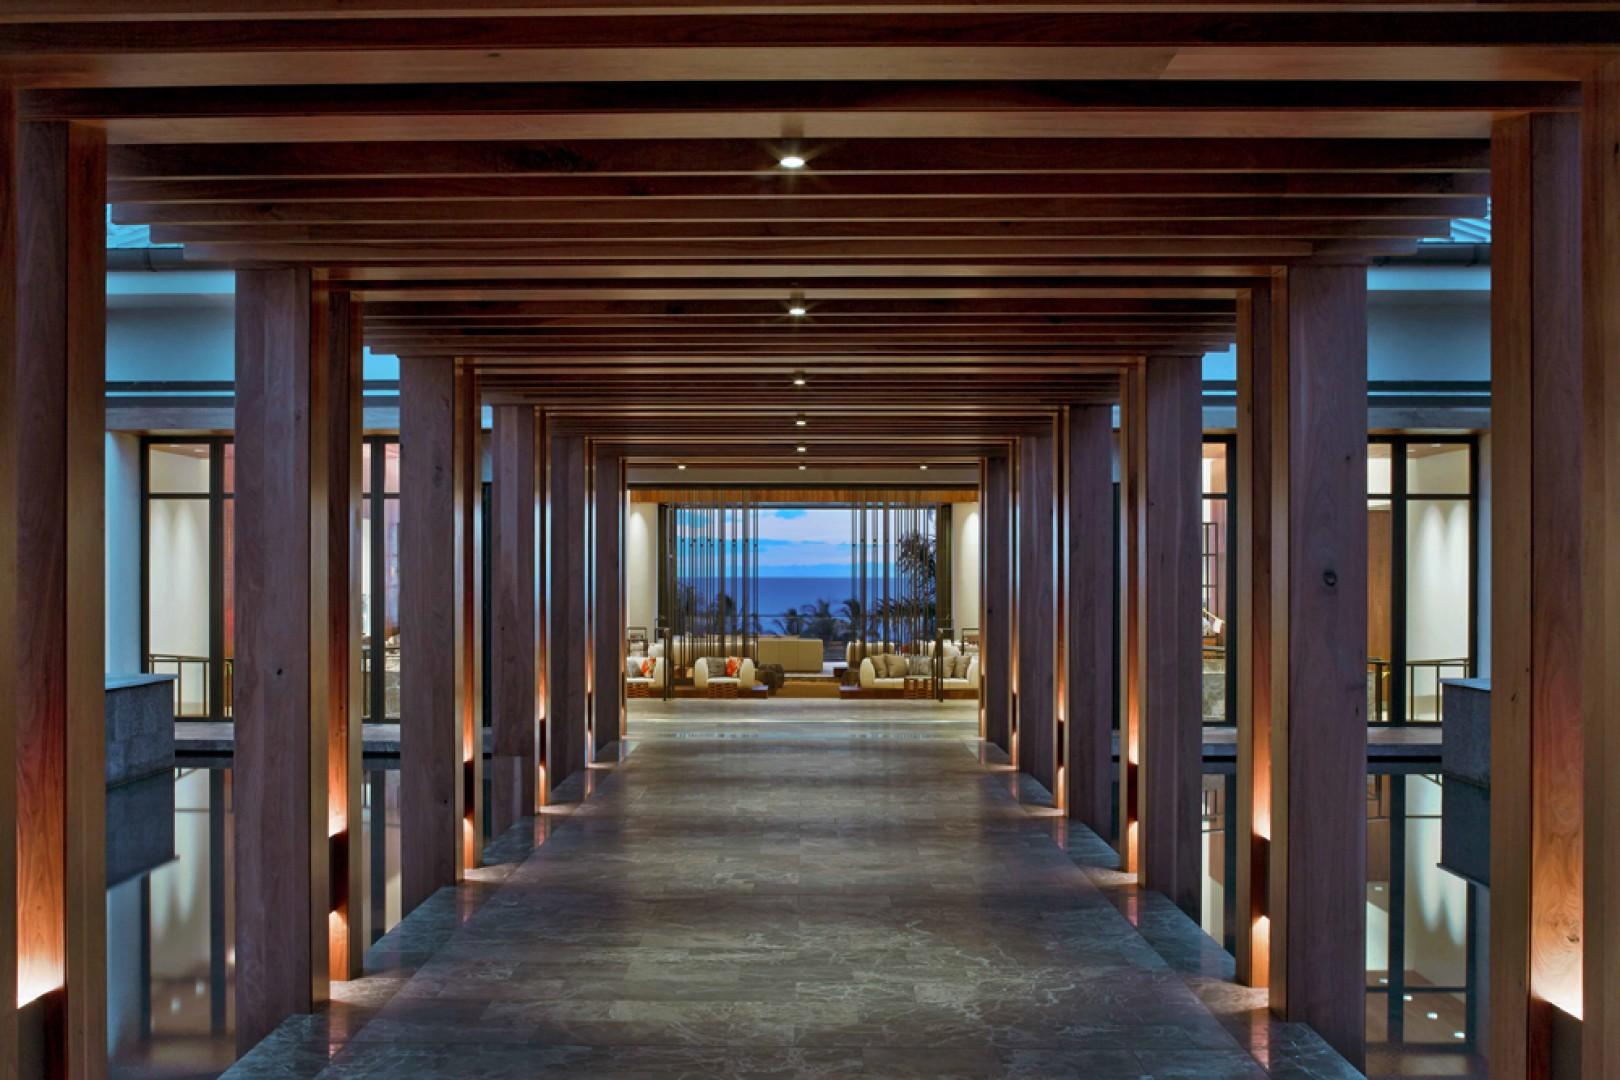 Andaz Maui Elegant and Modern Entranceway Leading to Main Lobby